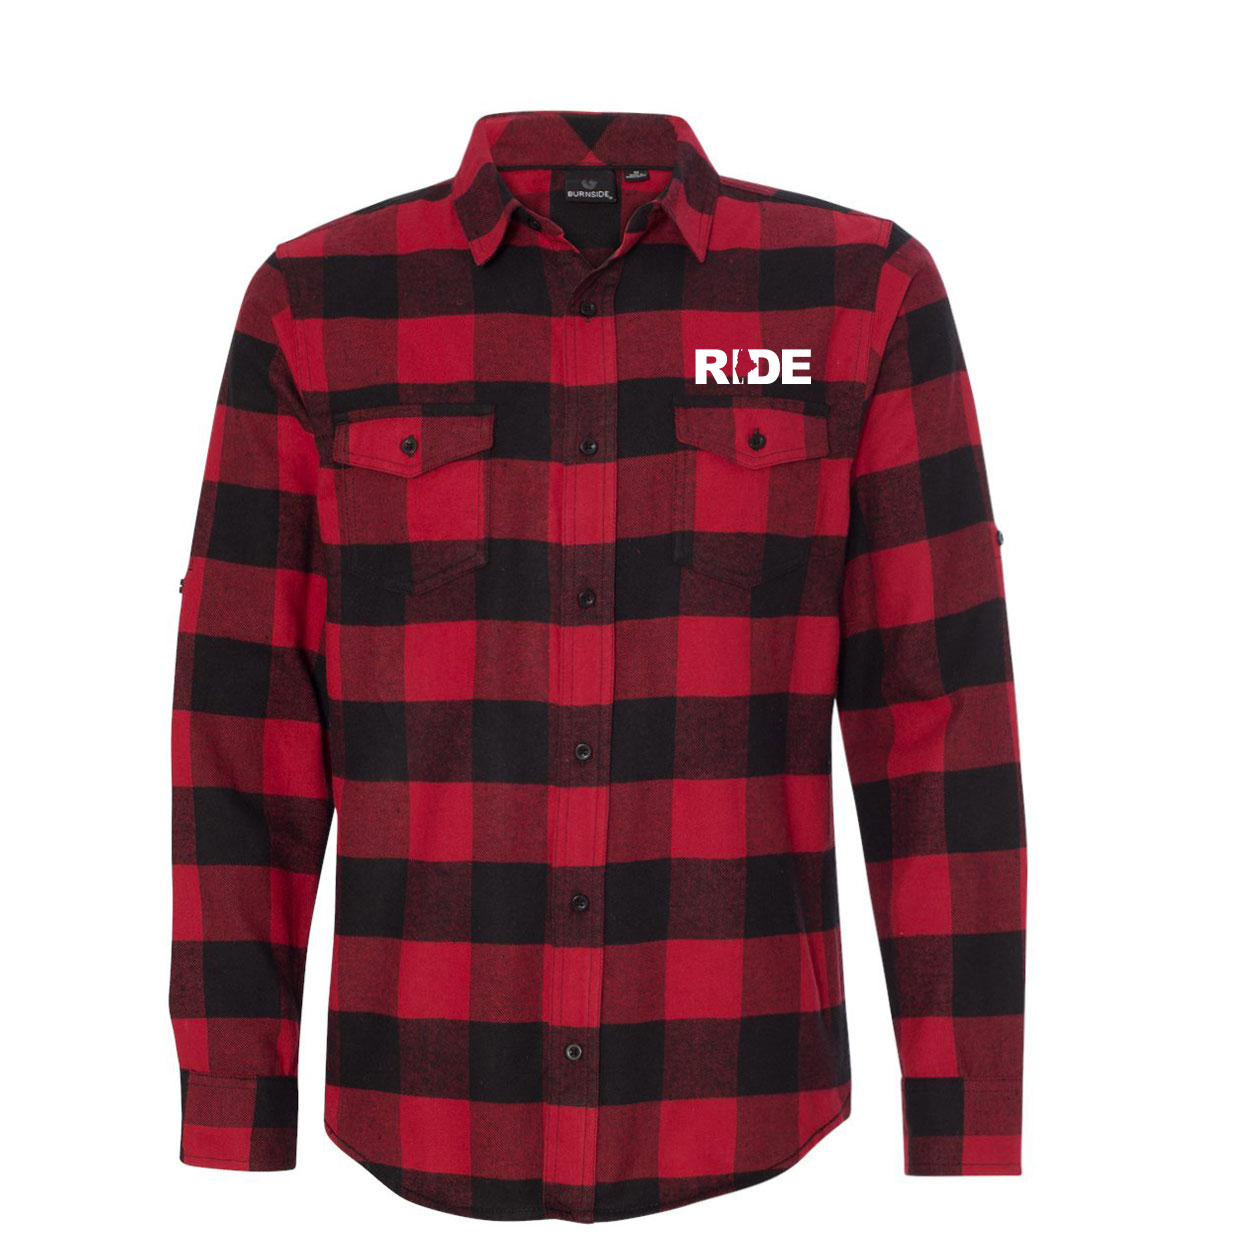 Ride Maine Classic Unisex Long Sleeve Flannel Shirt Red/Black Buffalo (White Logo)